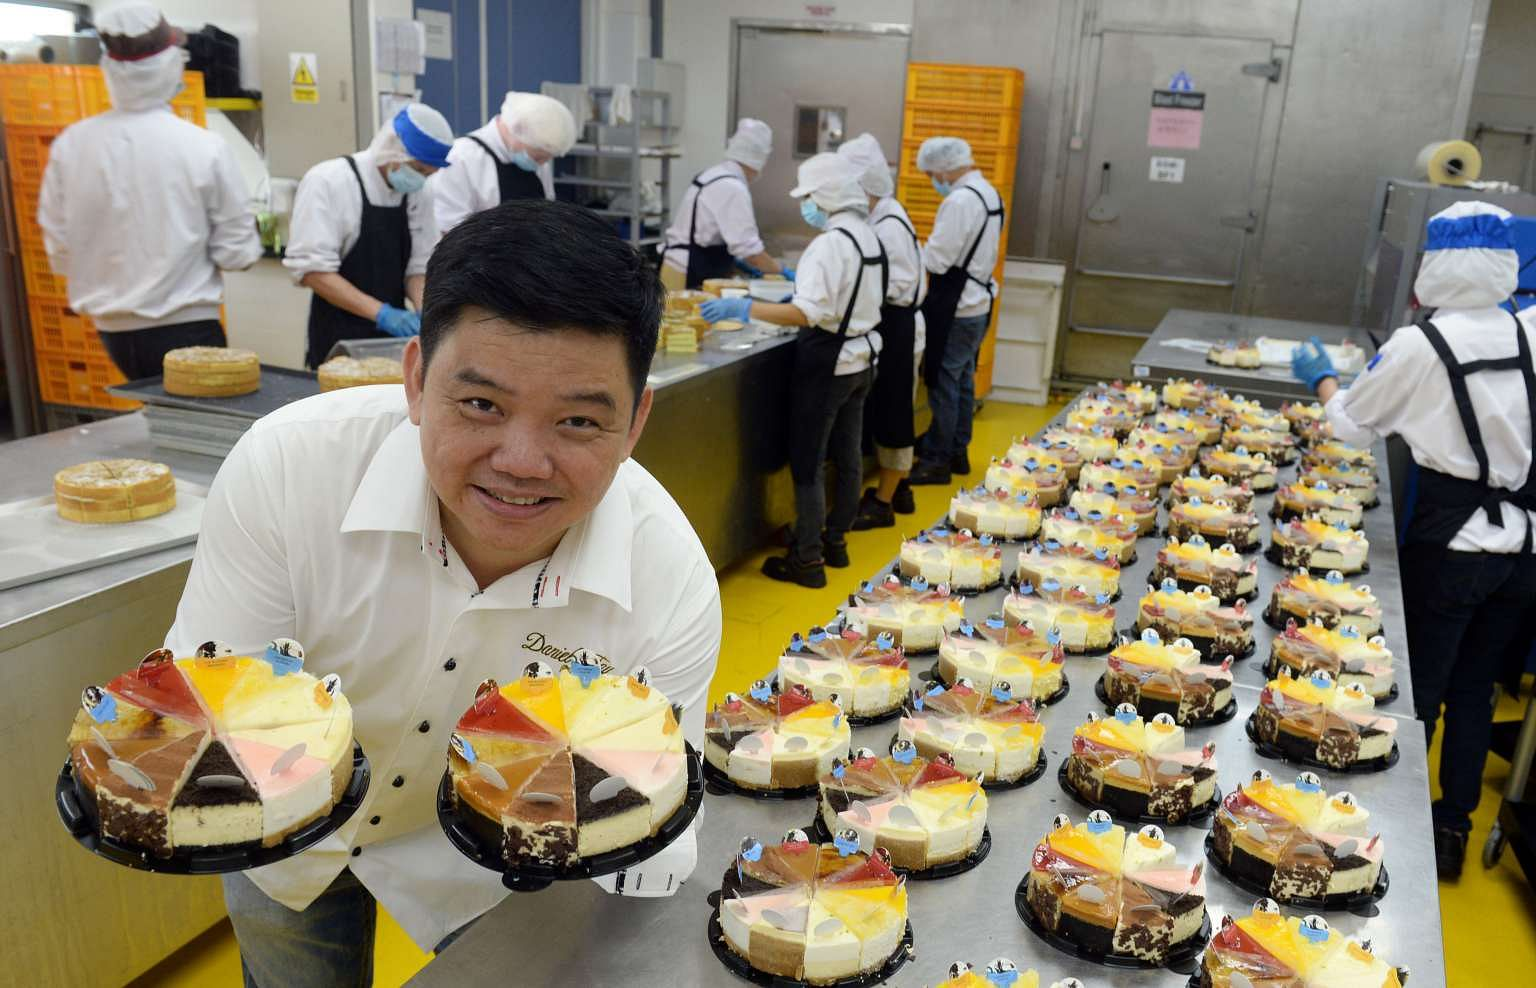 Tech's the way to sell cheesecakes, Business News & Top Stories - The  Straits Times